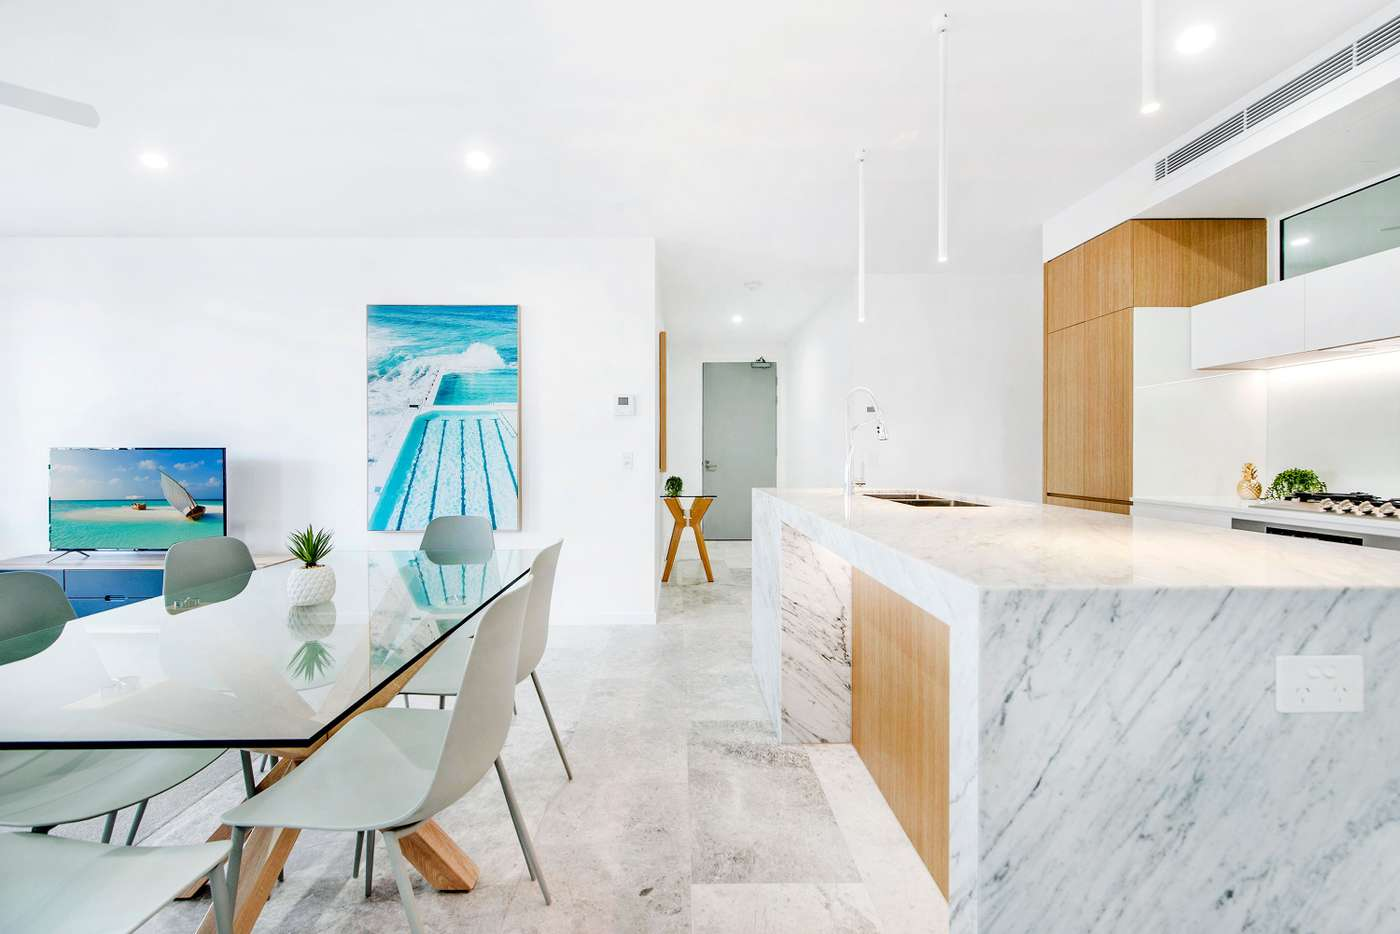 Main view of Homely apartment listing, 607/95 Old Burleigh Road, Broadbeach QLD 4218